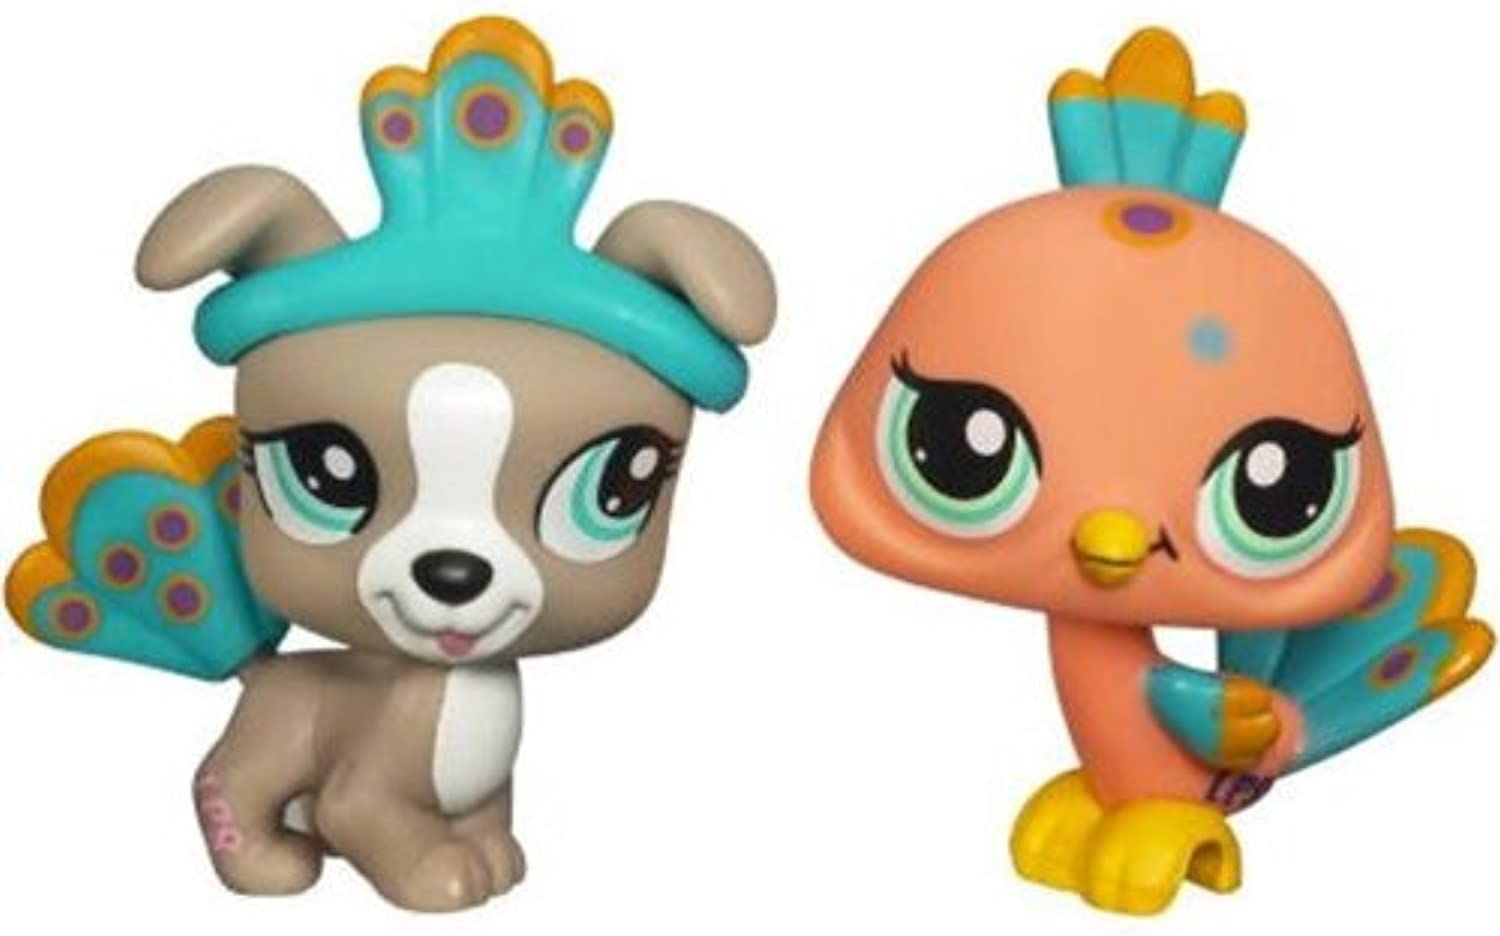 Littlest Pet Shop Collectible Figures Peacock & Pitbull